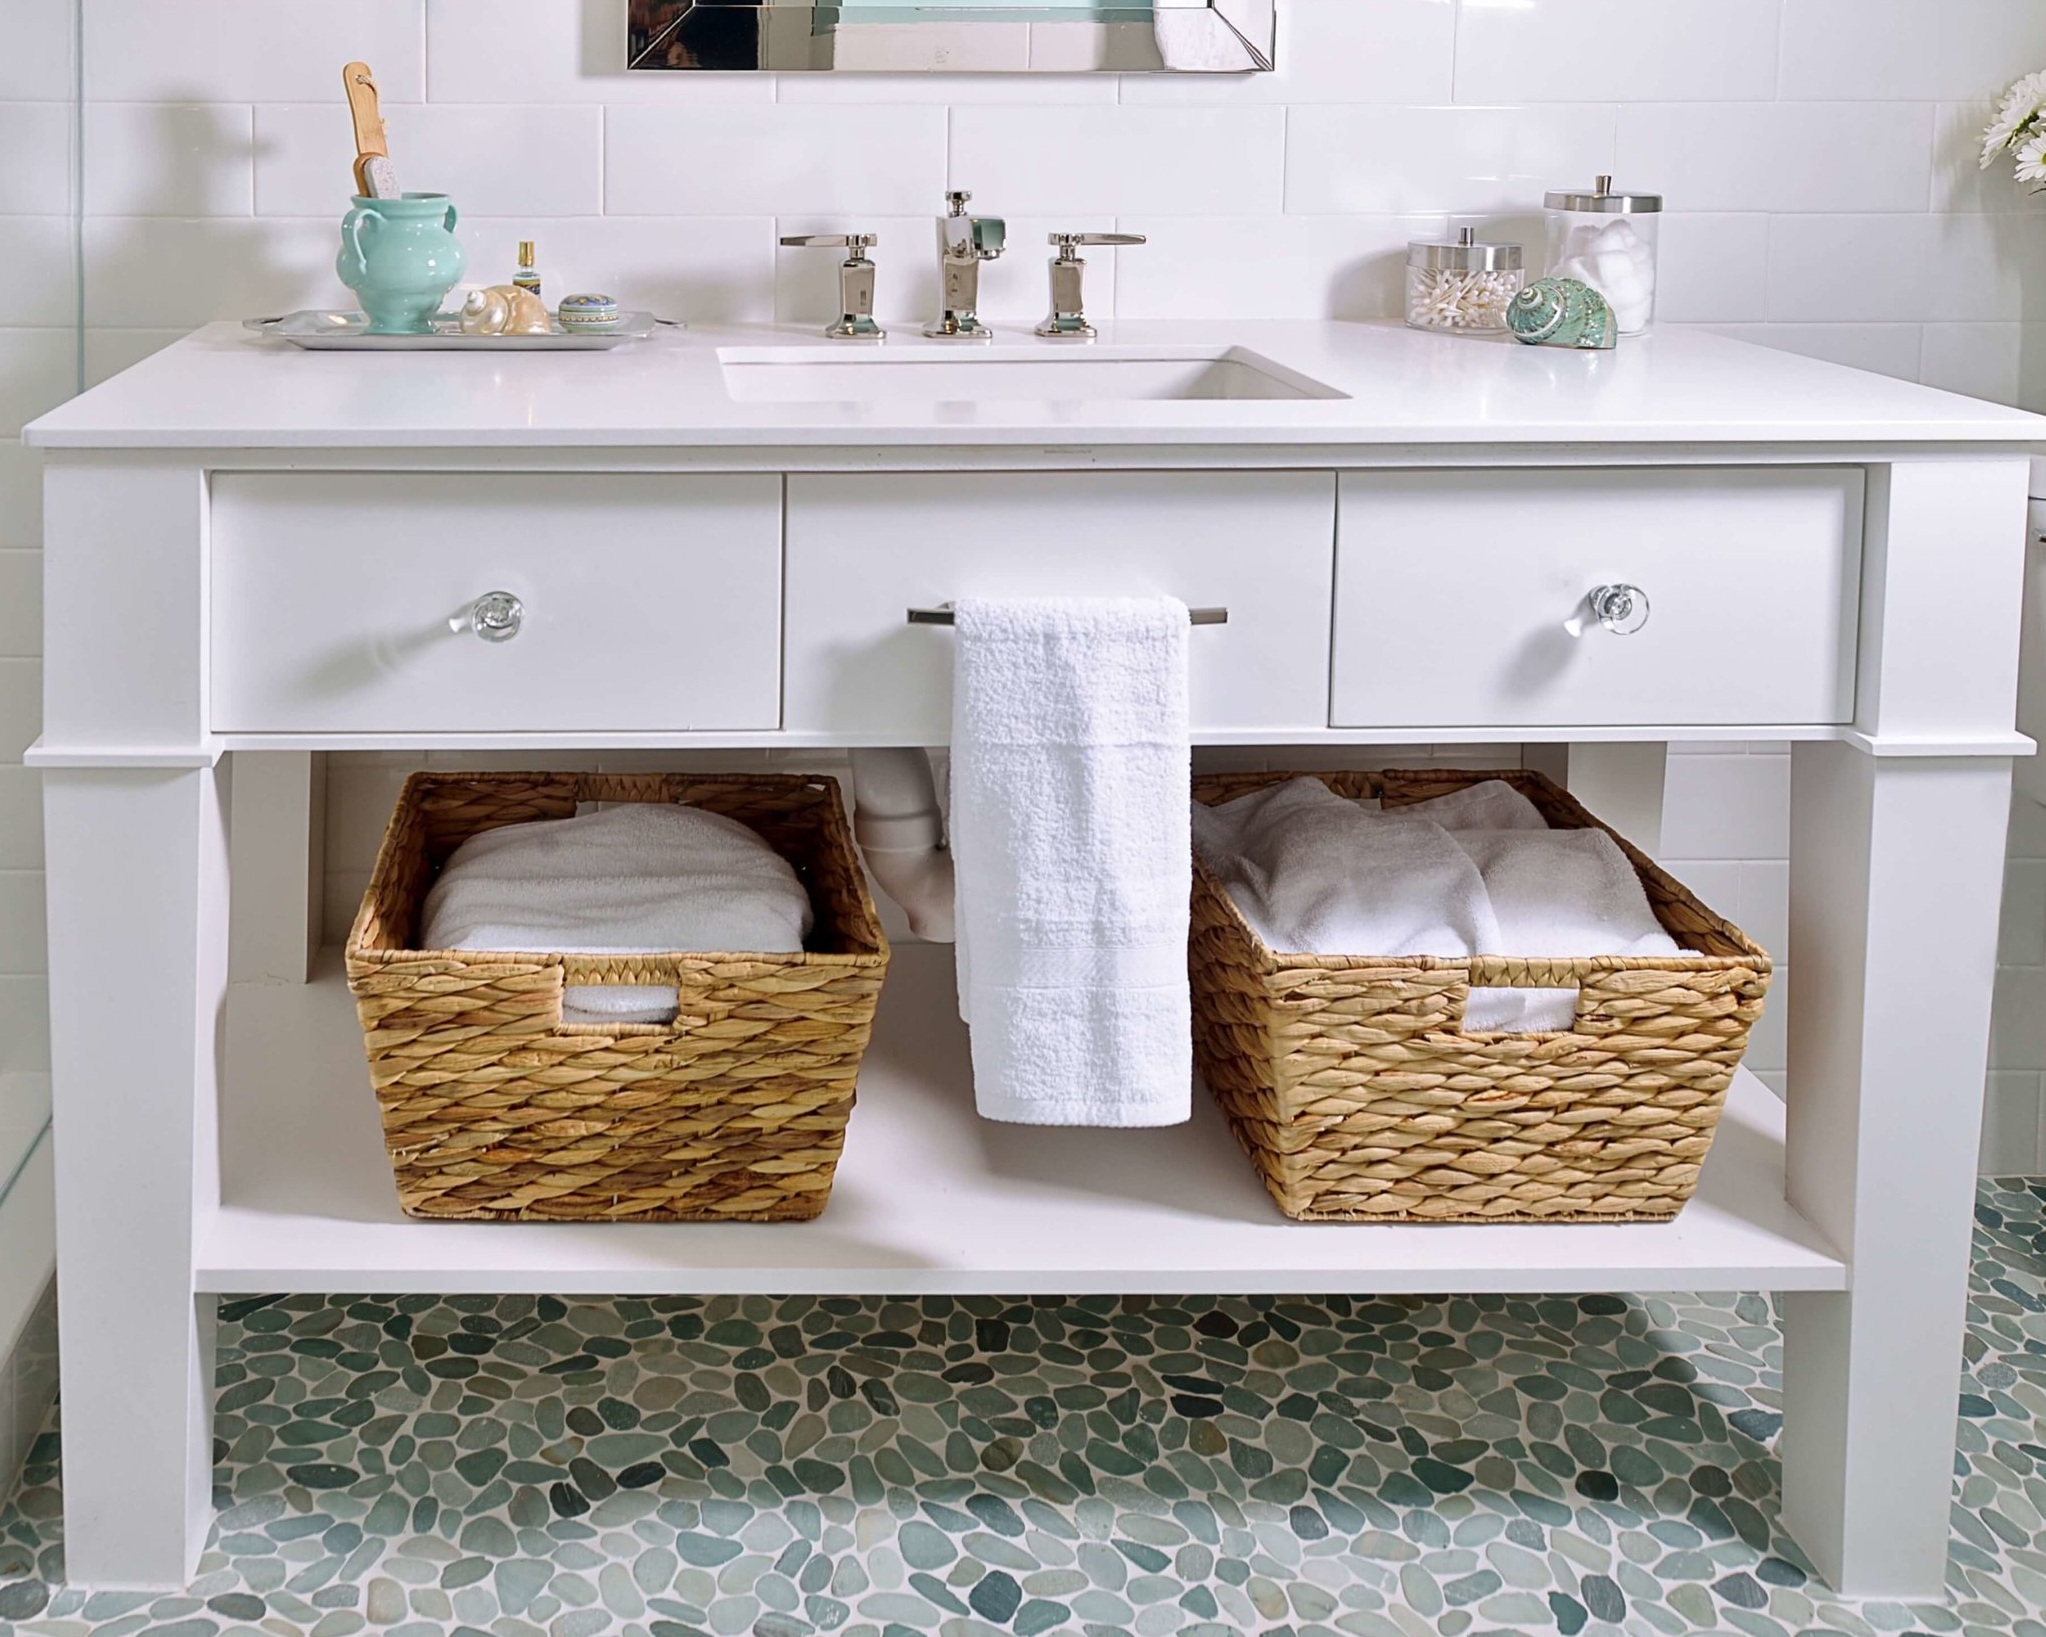 Custom bathroom vanity cabinet with legs and shelf | Carla Aston, Designer | Miro Dvorscak, Photographer